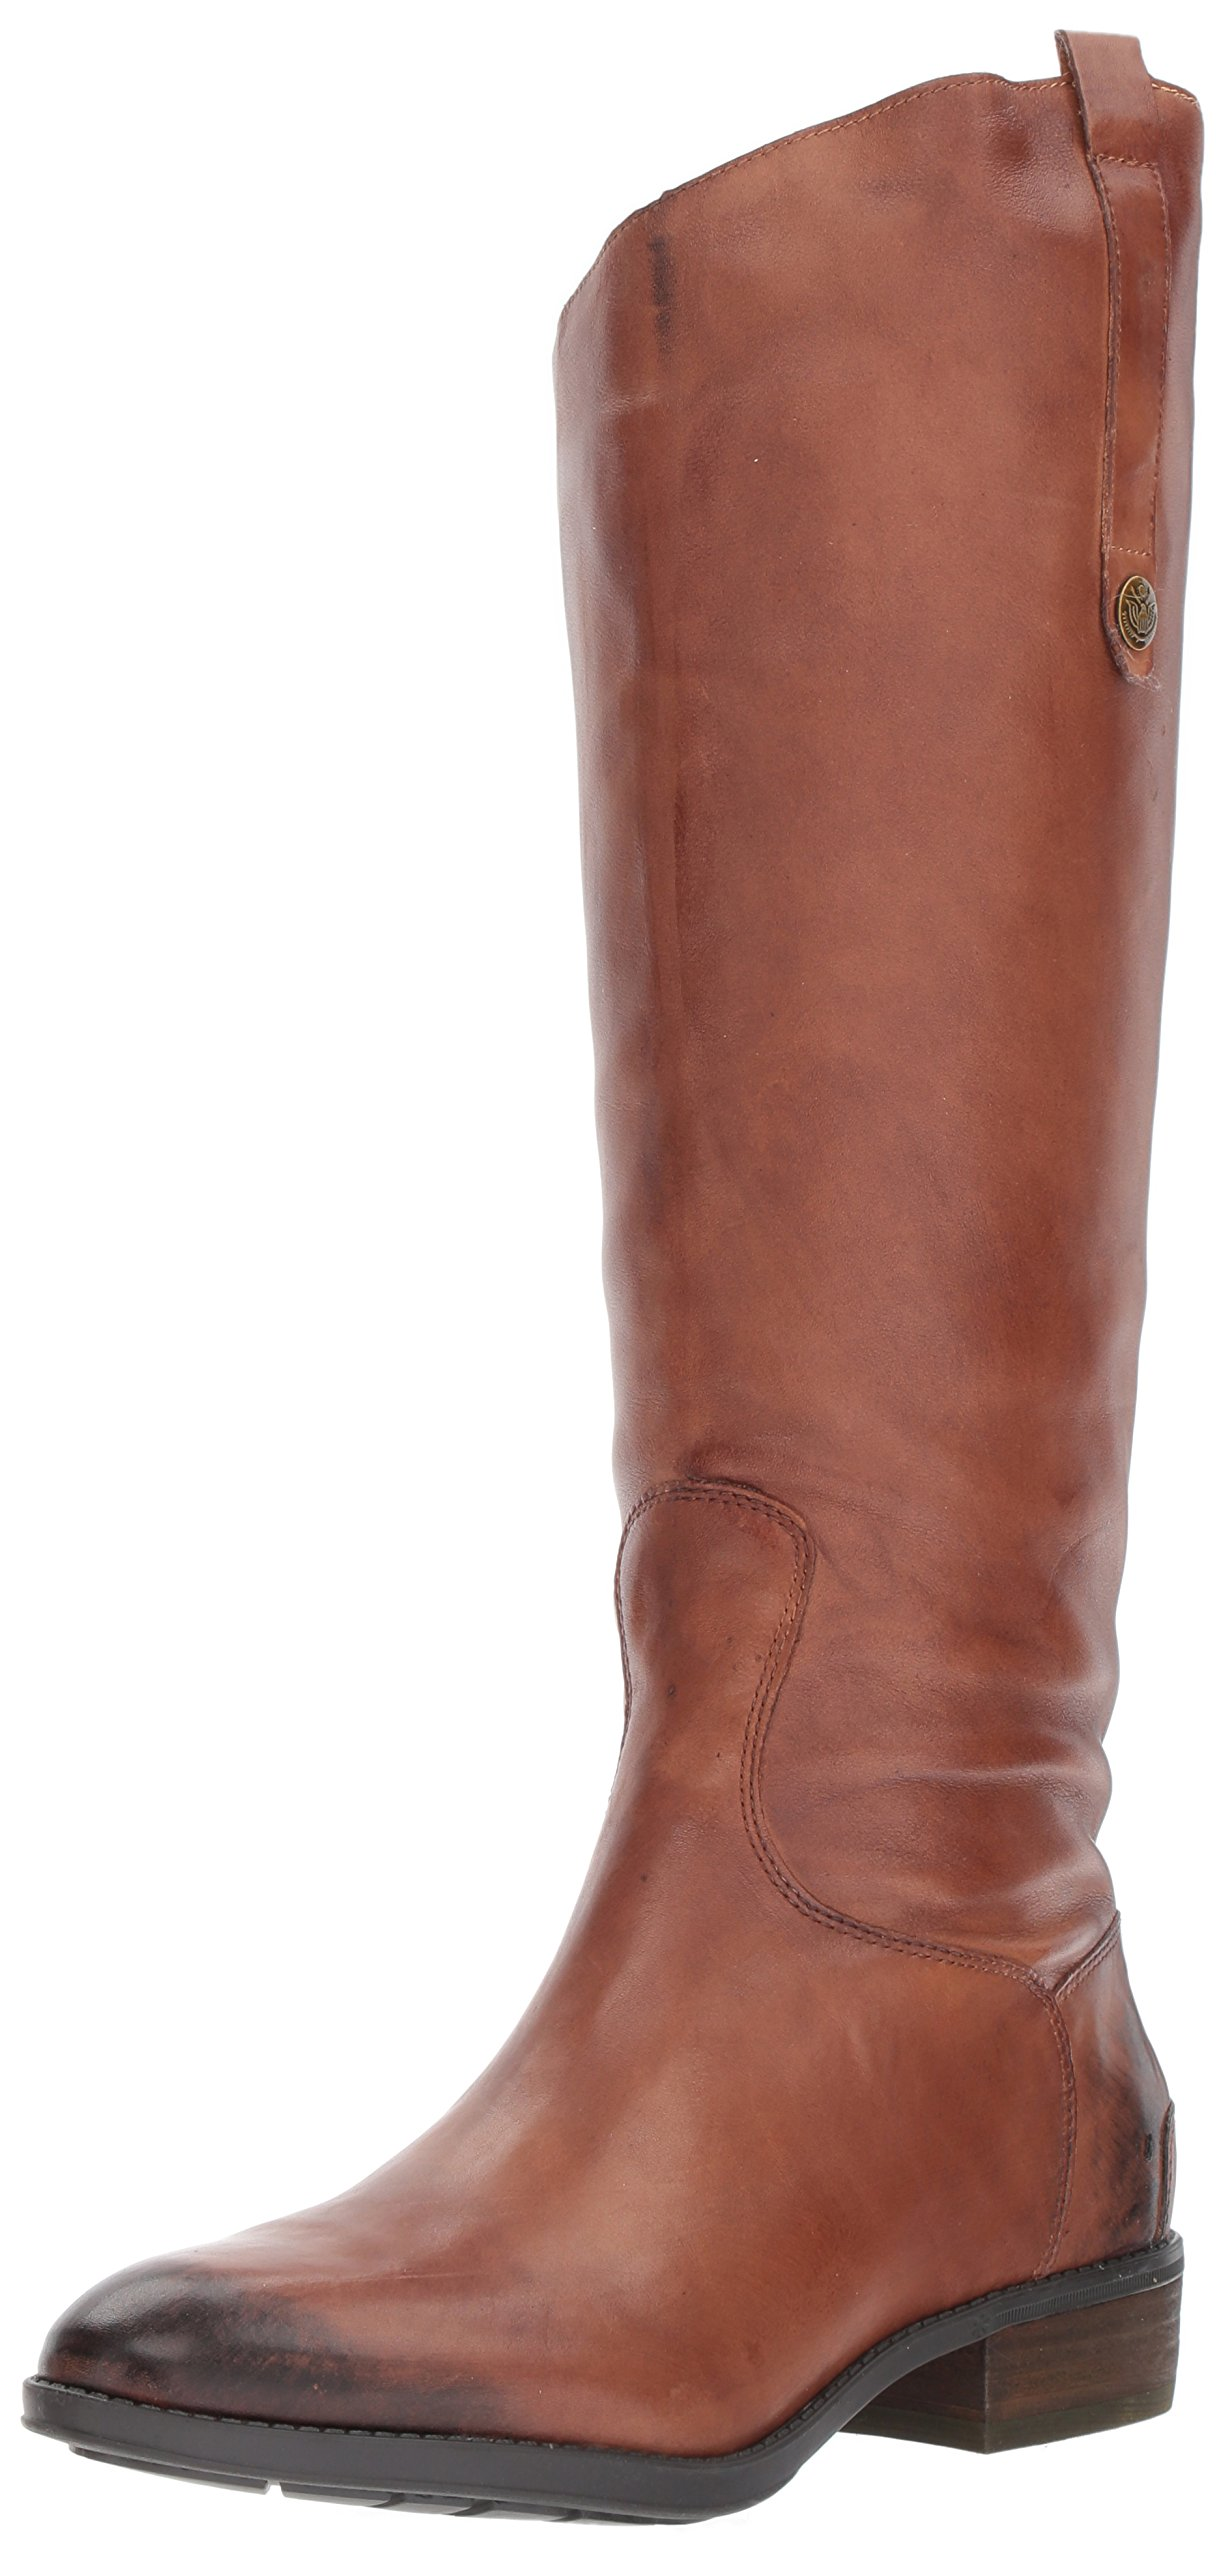 Sam Edelman Women's Penny Riding Boot, Whiskey Leather, 8.5 M US by Sam Edelman